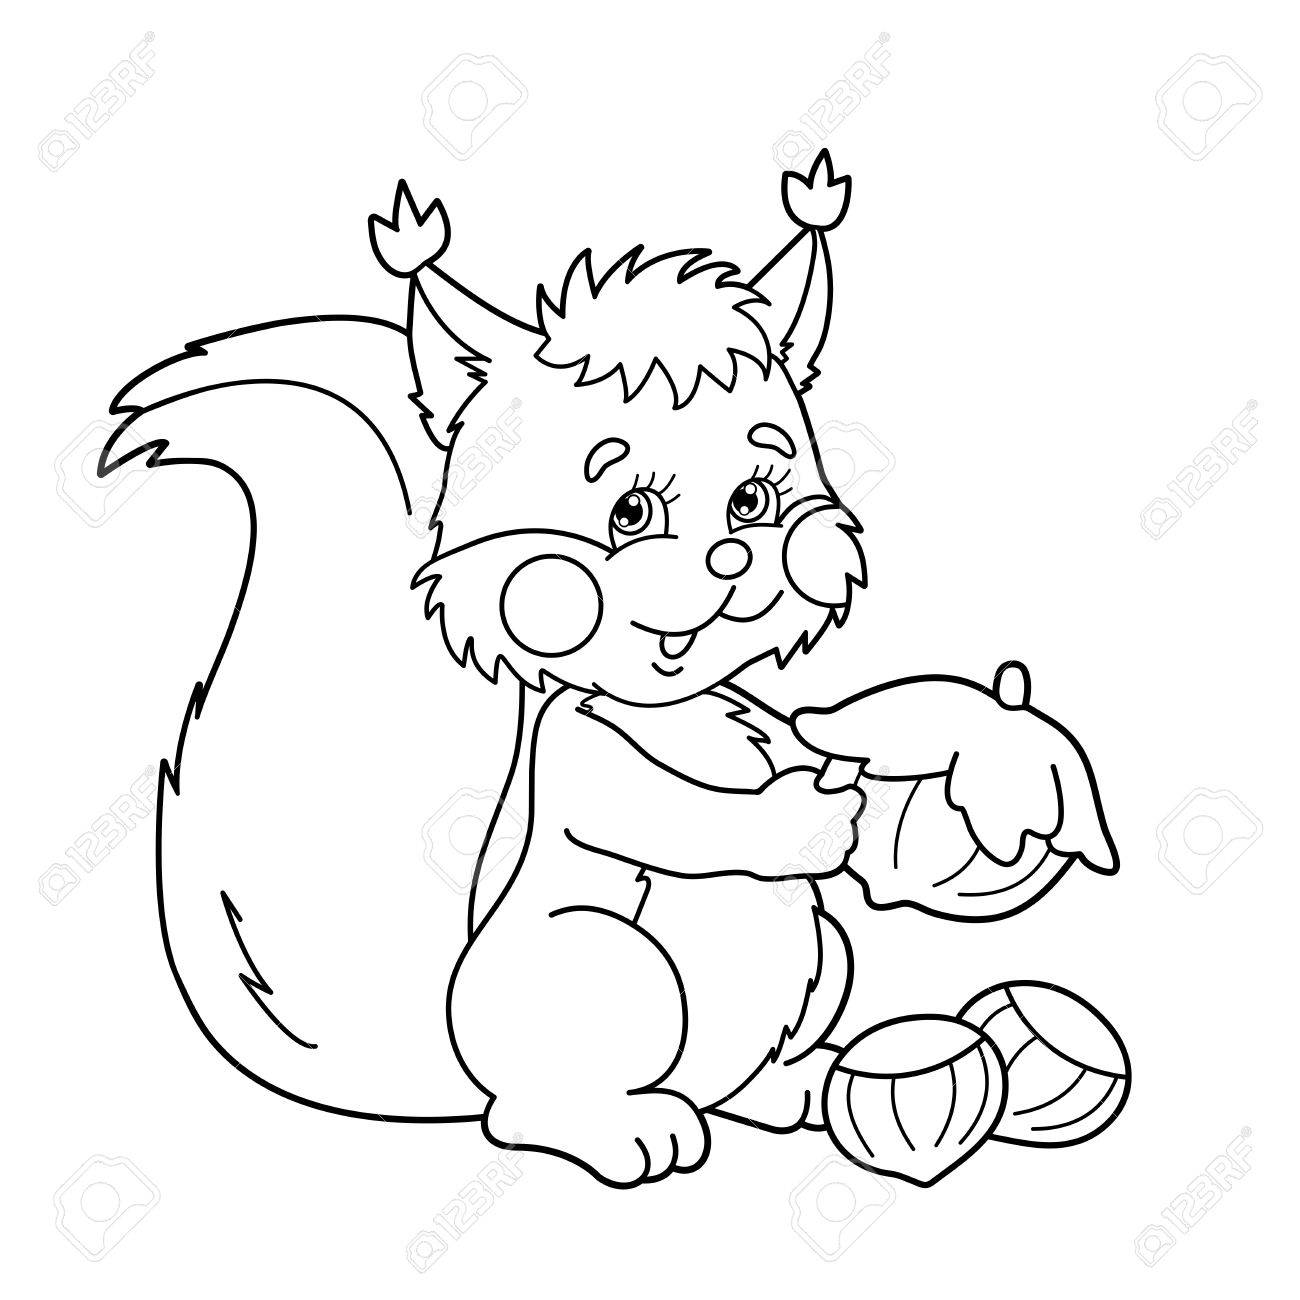 Coloring Page Outline Of Cartoon Squirrel With Nuts. Coloring ...